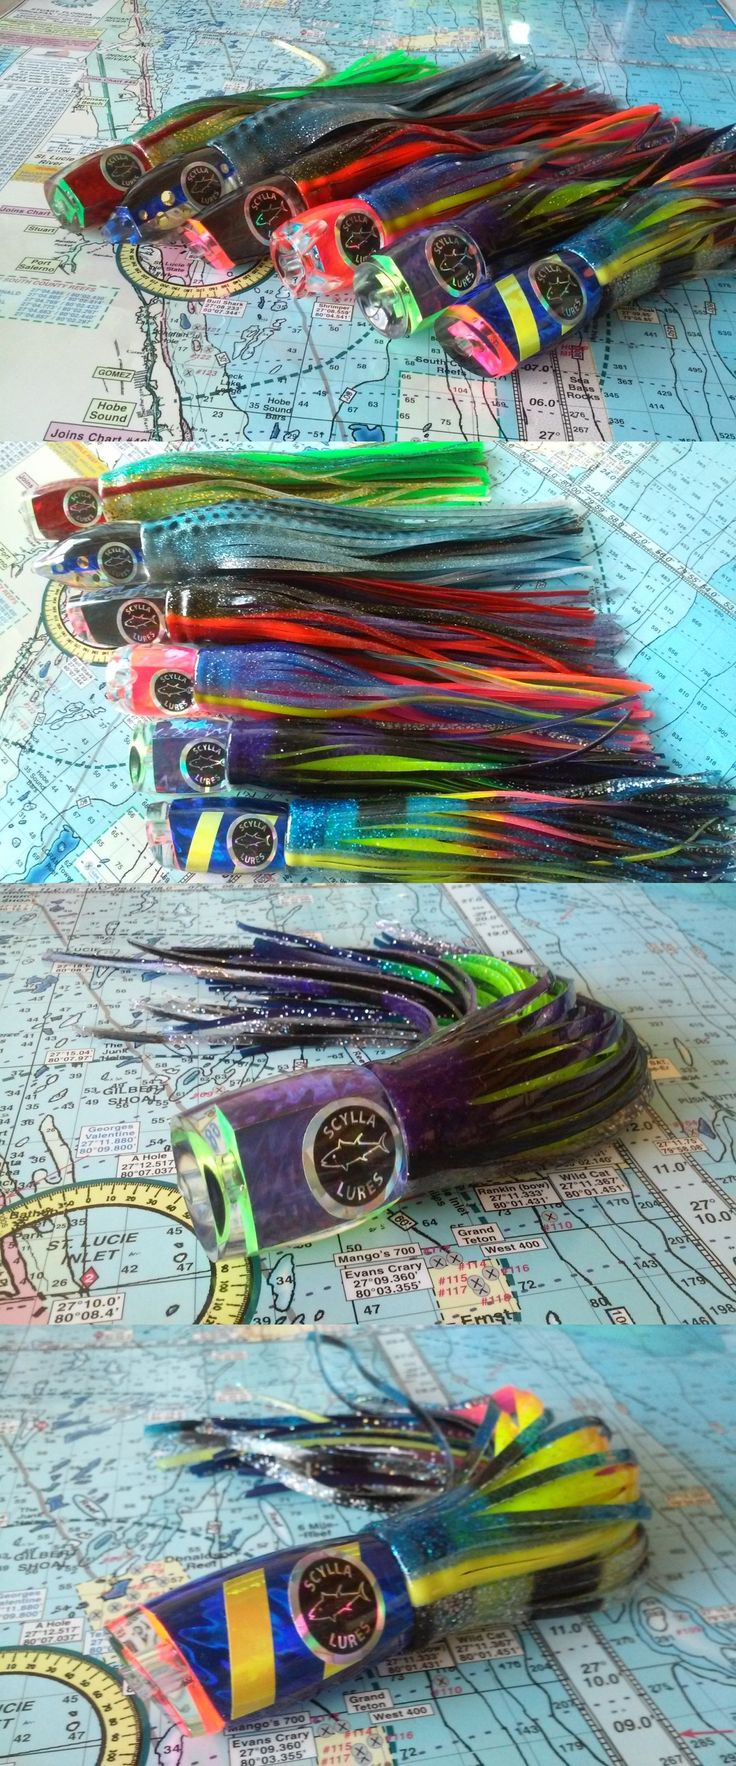 Saltwater Lures 36153: Saltwater Fishing Lures Big Game Lures Trolling Lures Offshore Tackle Marlin -> BUY IT NOW ONLY: $225 on eBay!